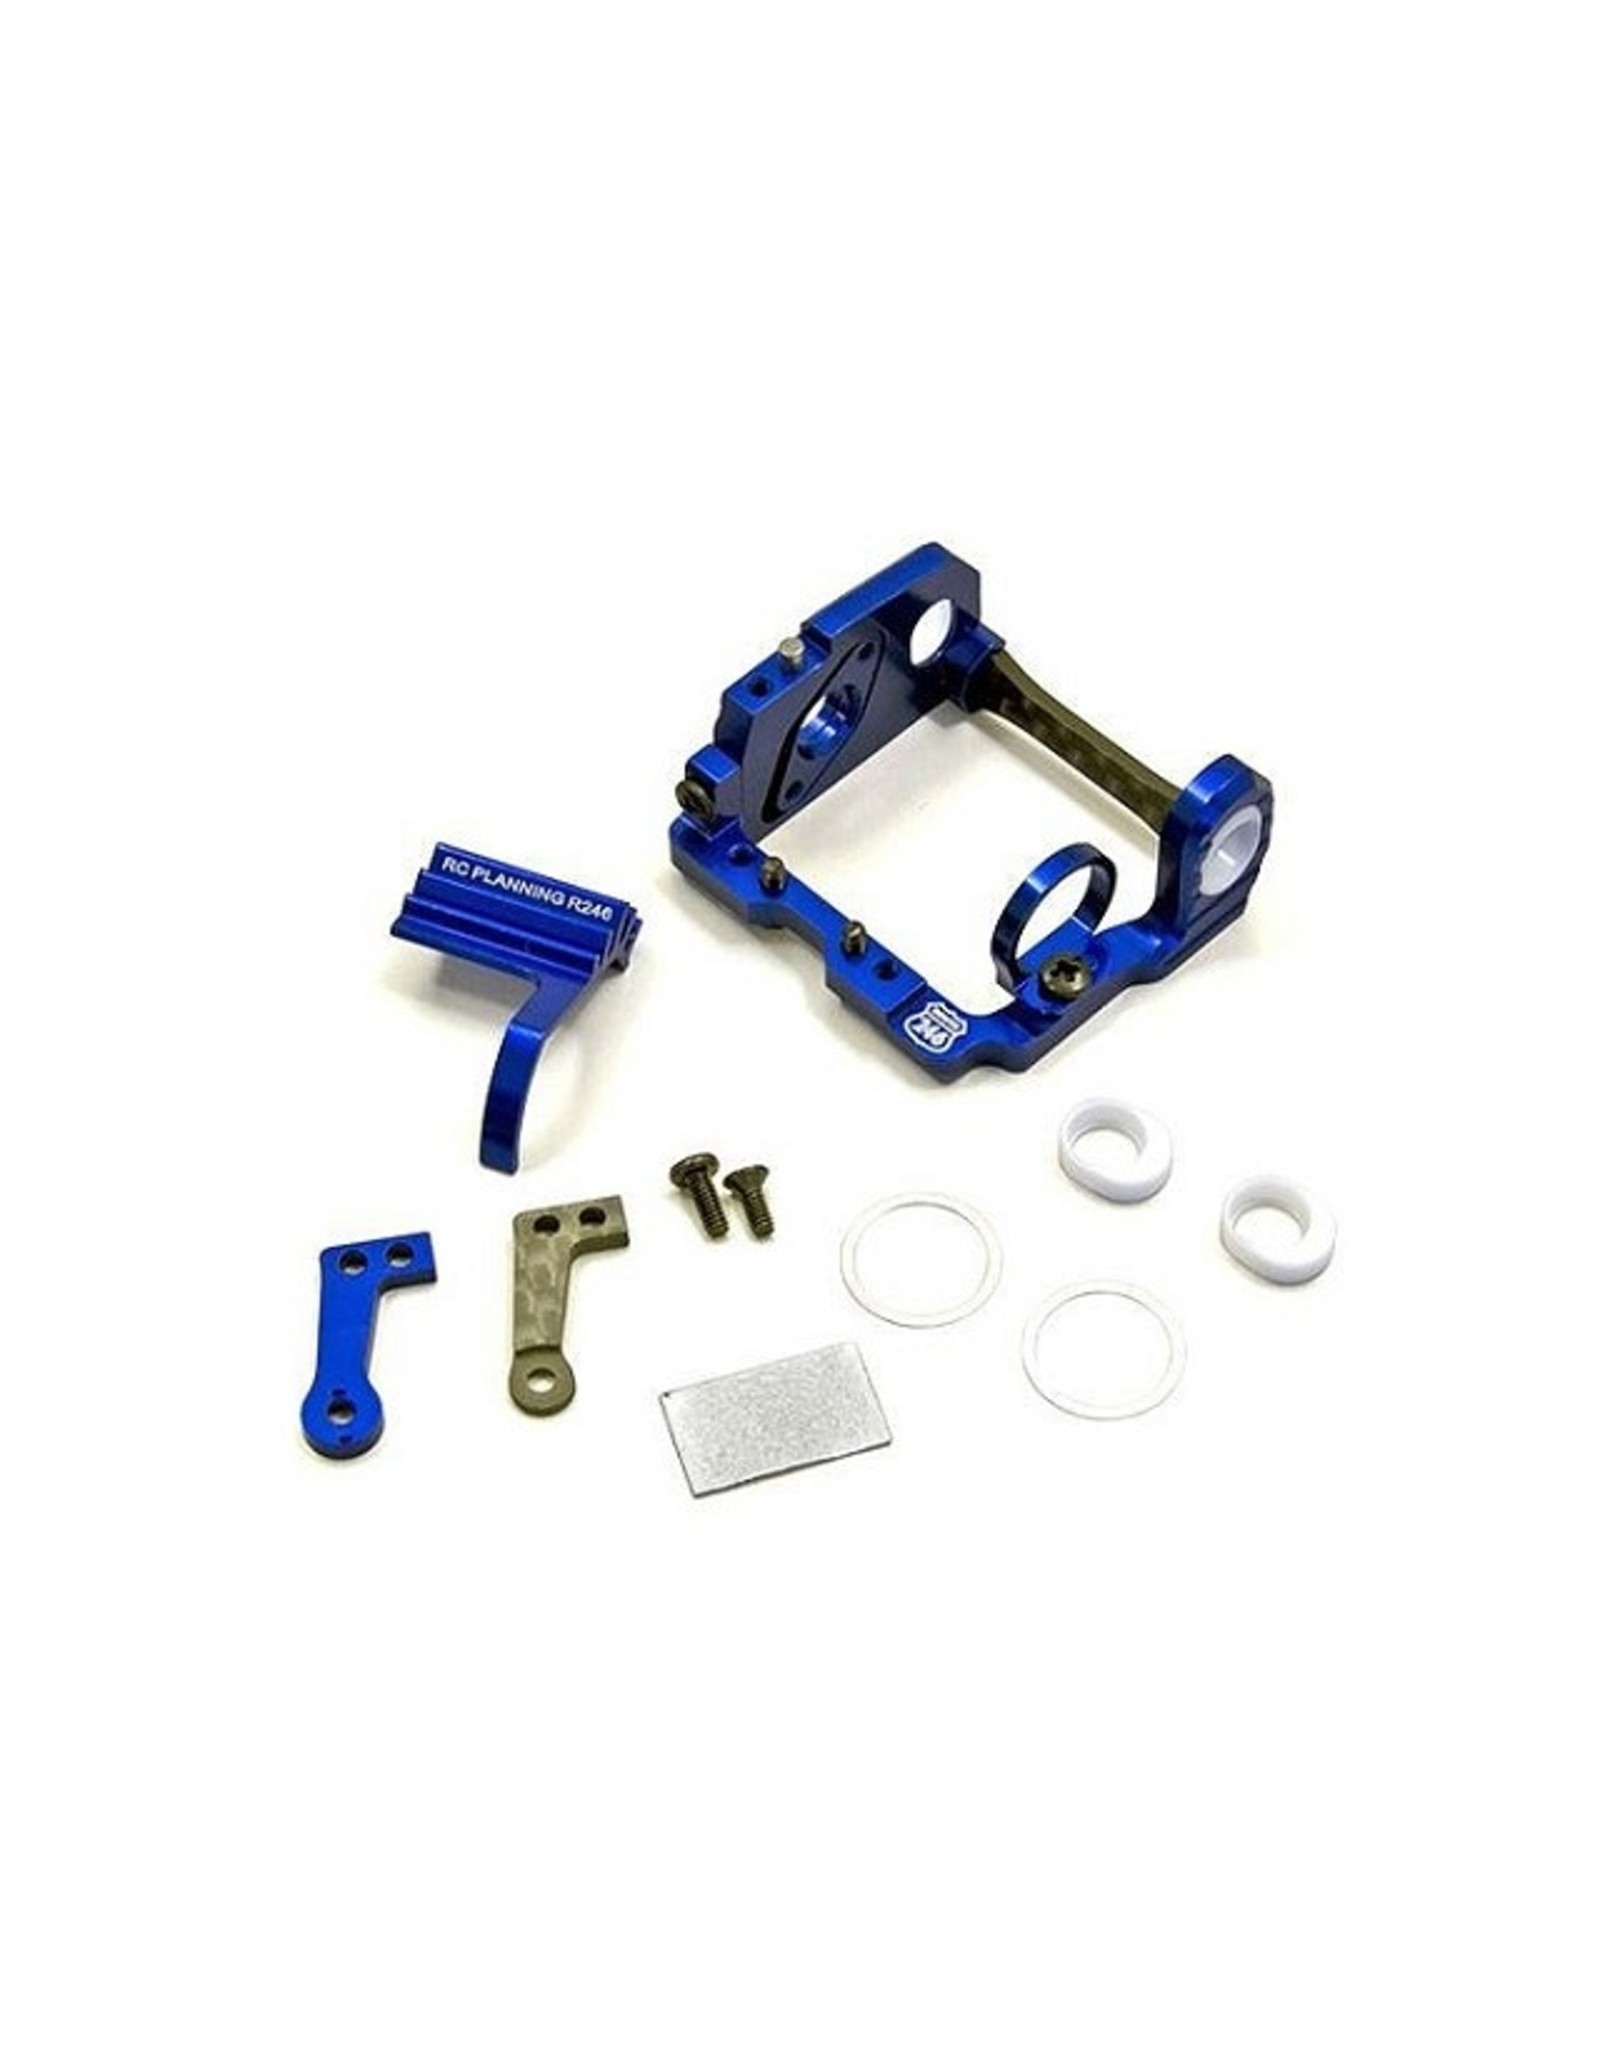 Kyosho MML Motor Mount for MR-03 / HB98mm (R246-1351B)